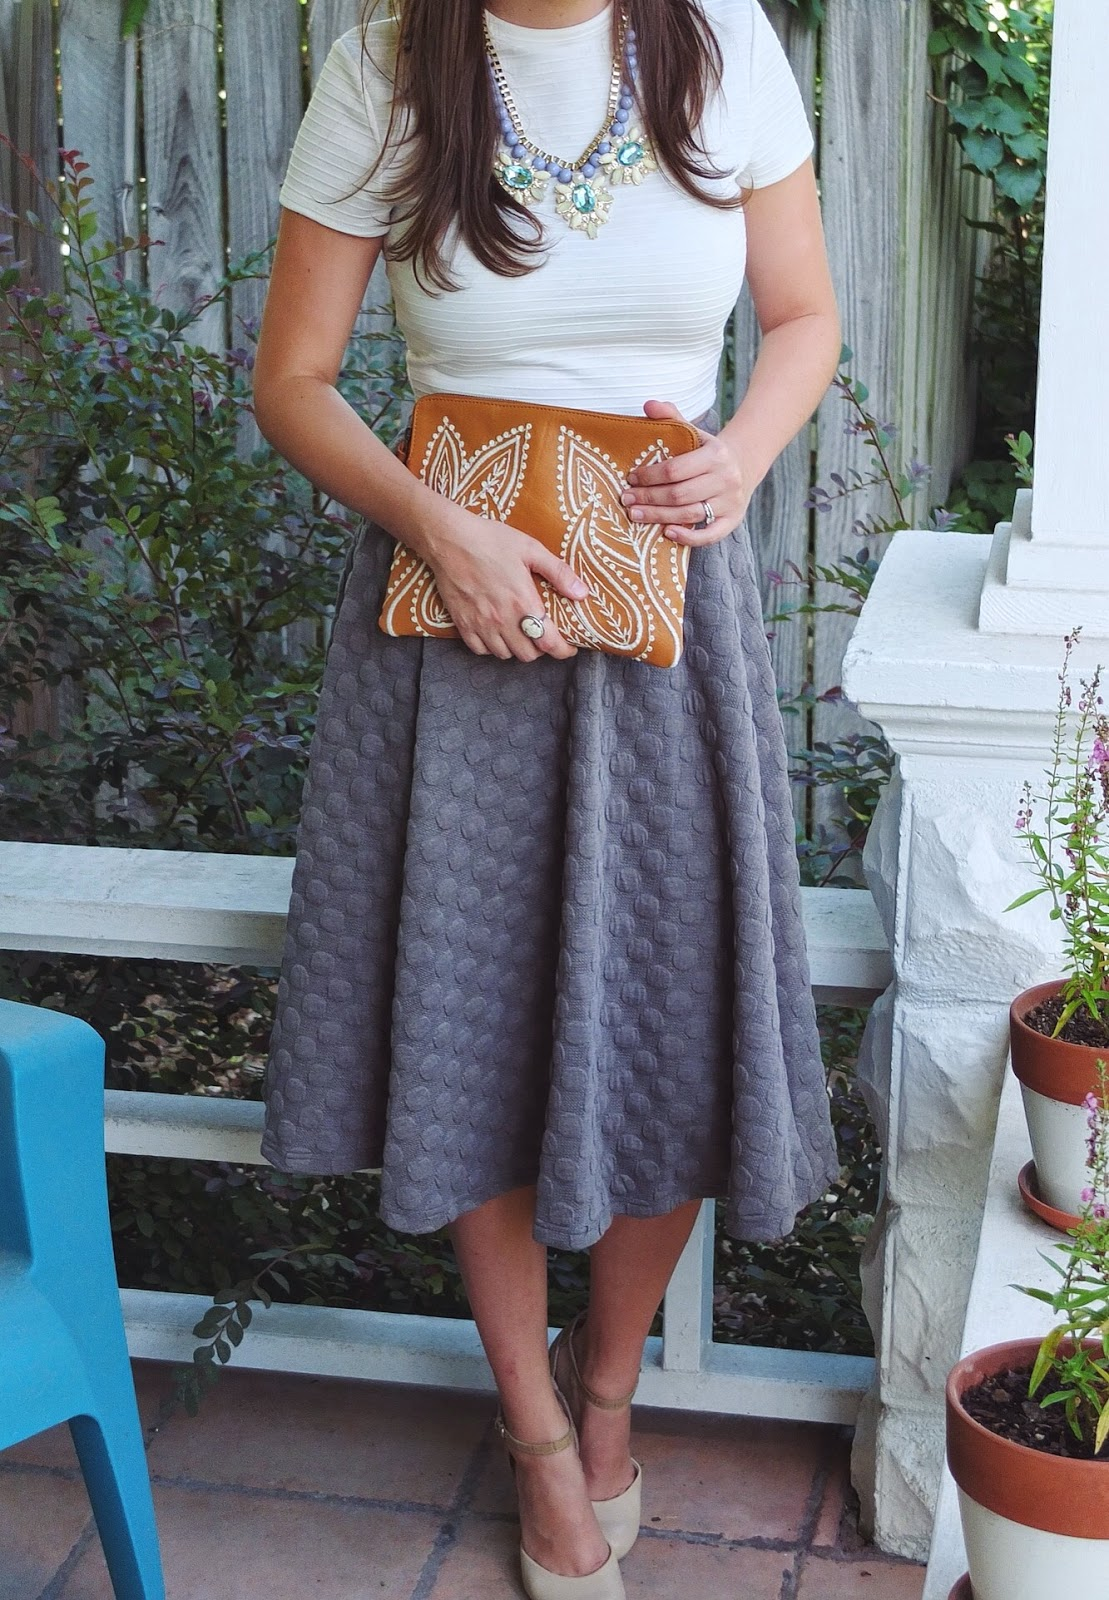 Nordstrom Gray Midi Skirt, Seychelles Prowl Heels, Anthropologie Prowl Heels, Nordstrom Grey Midi Skirt, Anthropologie Embroidered Clutch, Anthropologie Clutch, Anthropologie Alba Embroidered Clutch, Alba Embroidered Clutch, Seychelles Heels, Seychelles Conquer Heels,  Nordstrom Midi Skirt, Gray Midi Skirt, Grey Midi Skirt, White Crop Top and Midi Skirt,